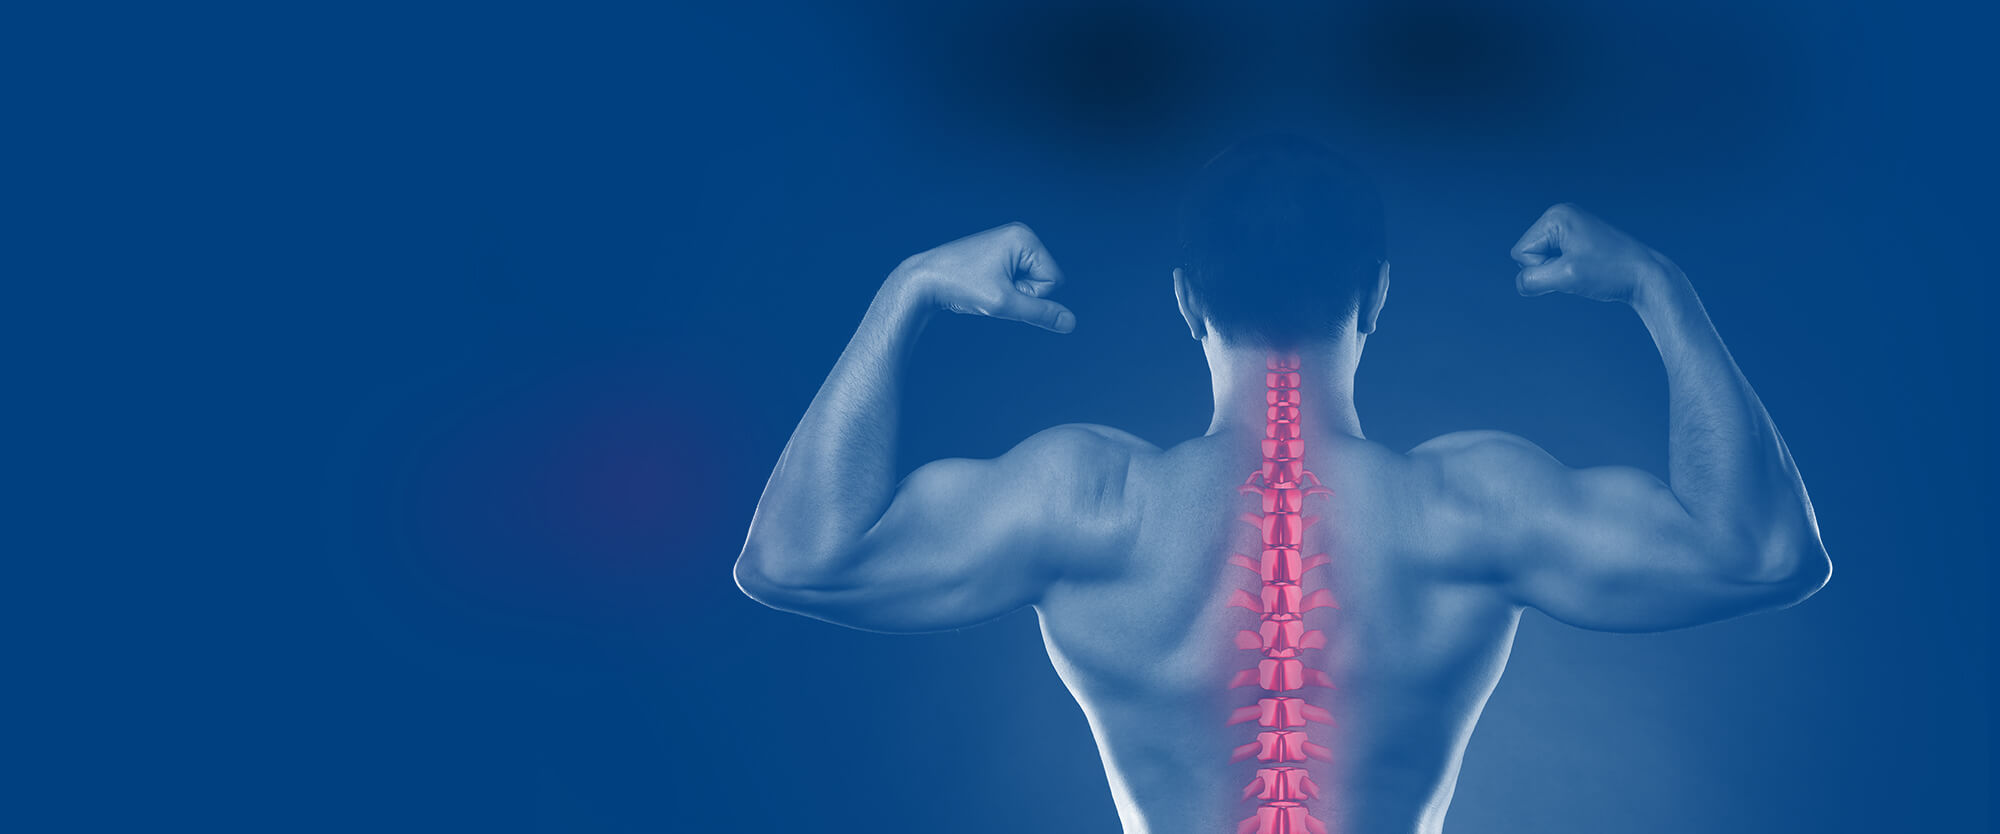 A man's back while flexing his muscles with his spinal vertebra highlighted in pink